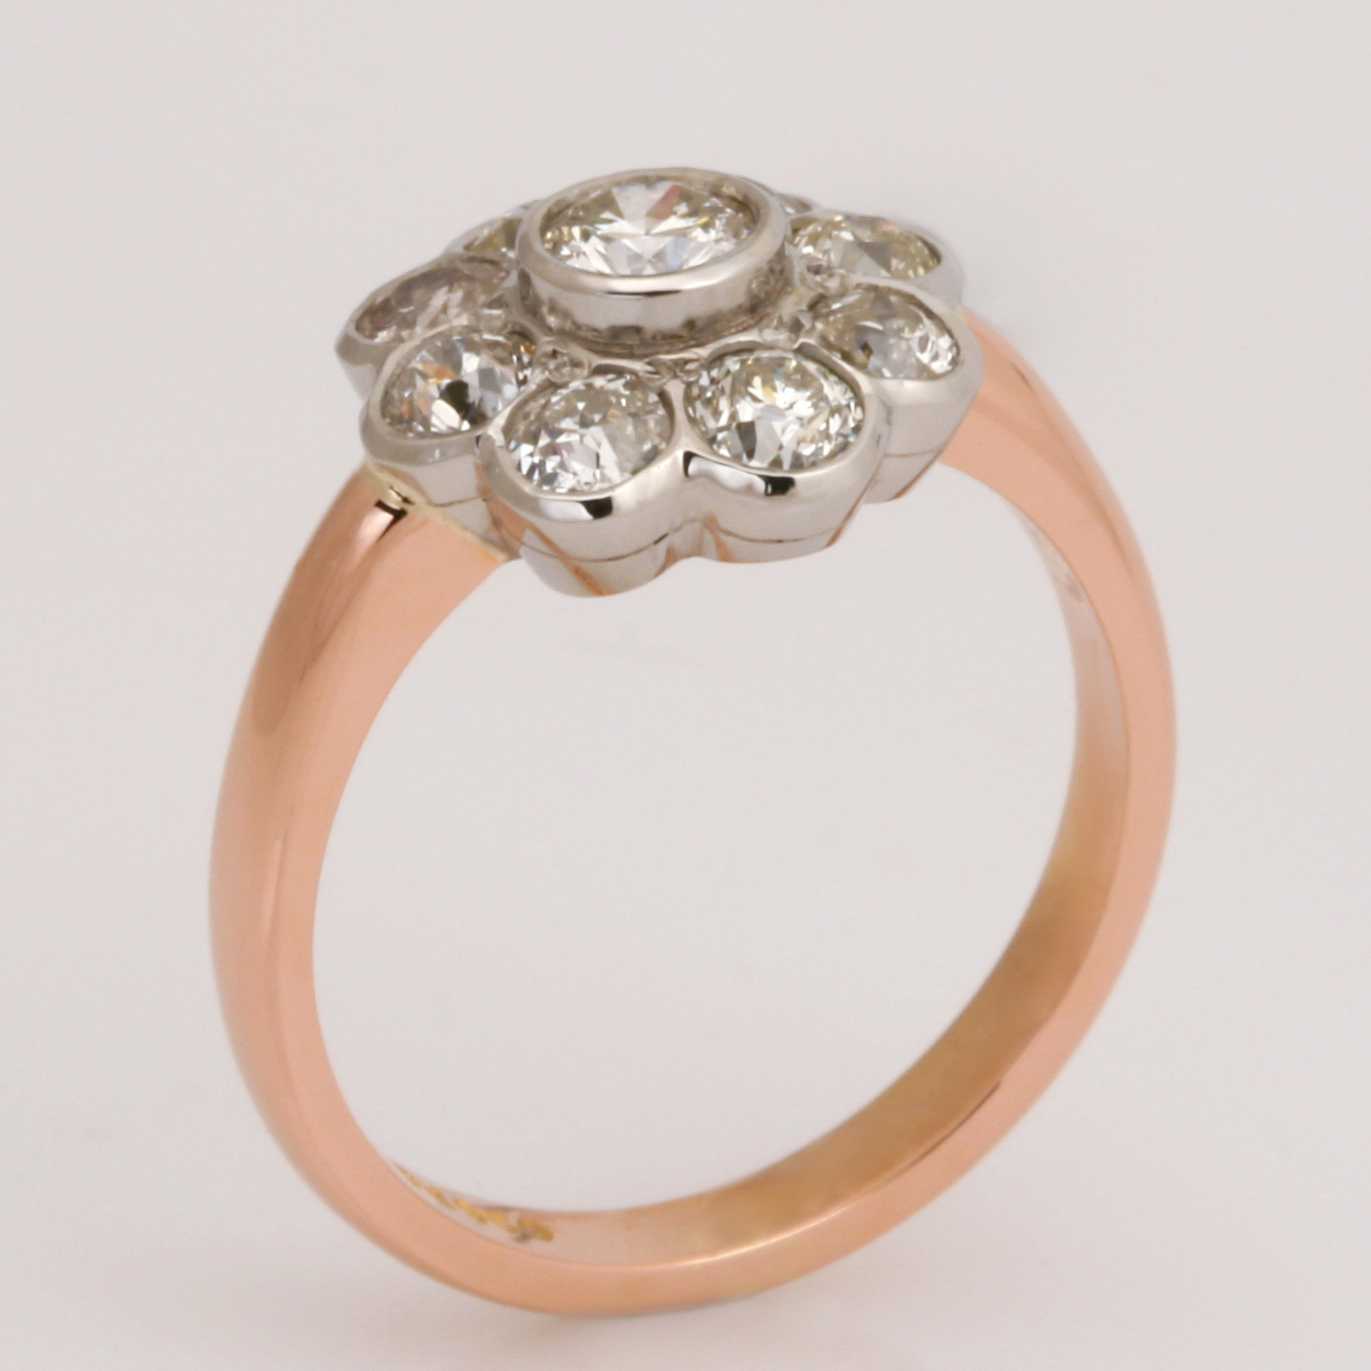 Handmade ladies palladium and 18ct rose gold diamond Engagement ring